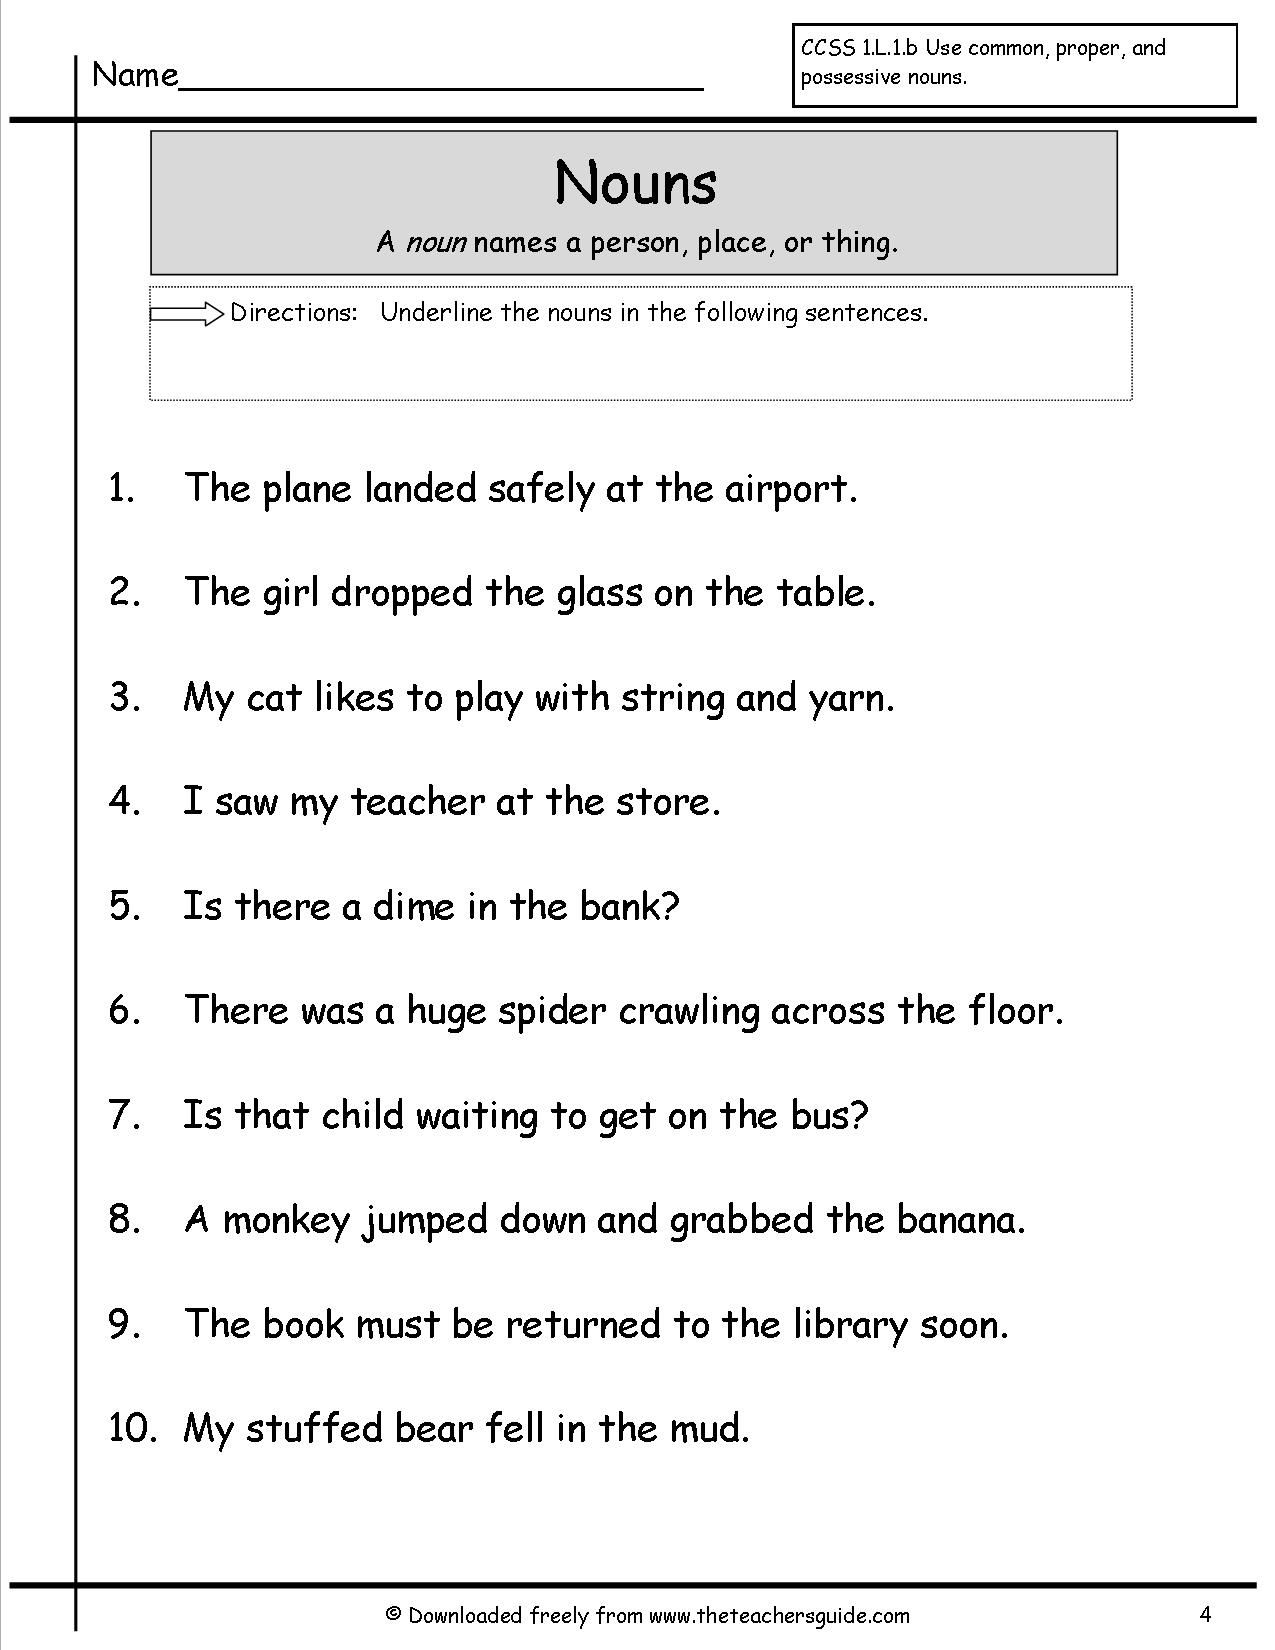 Nouns Exercises Worksheets